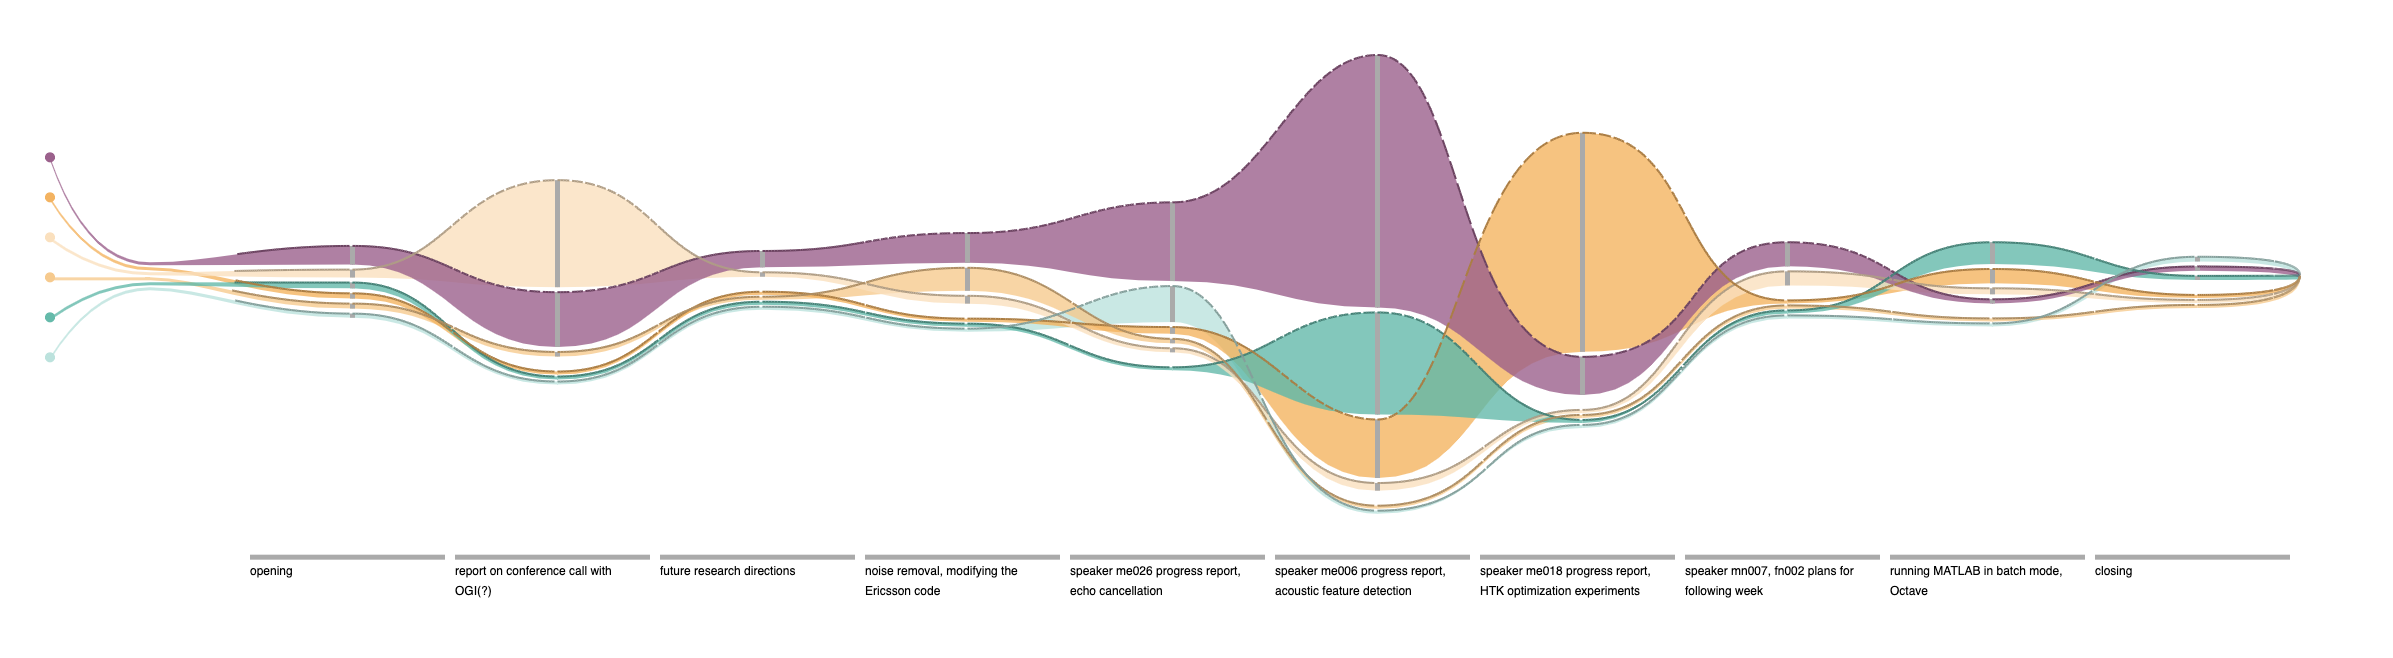 Discussion Flows: An Interactive Visualization for Analyzing Engagement in Multi-Party Meetings